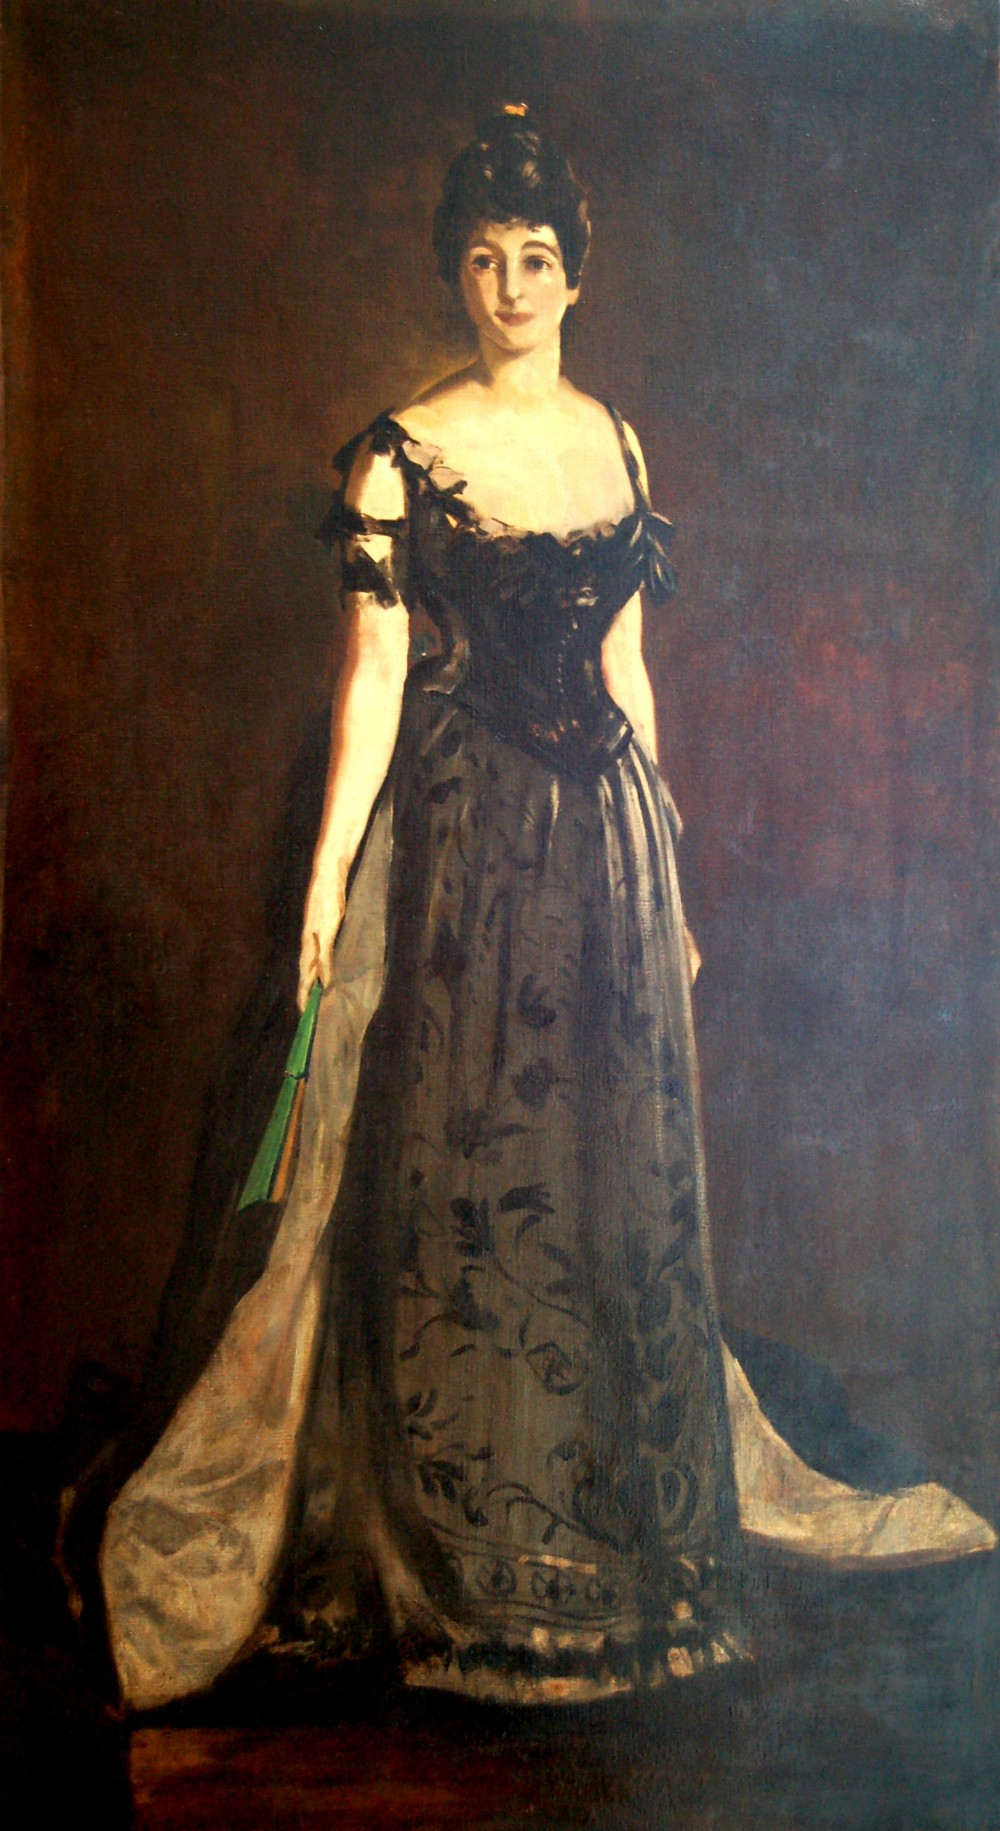 circle of john singer sargent 18561925portrait of an elegant lady in evening dress holding a fan